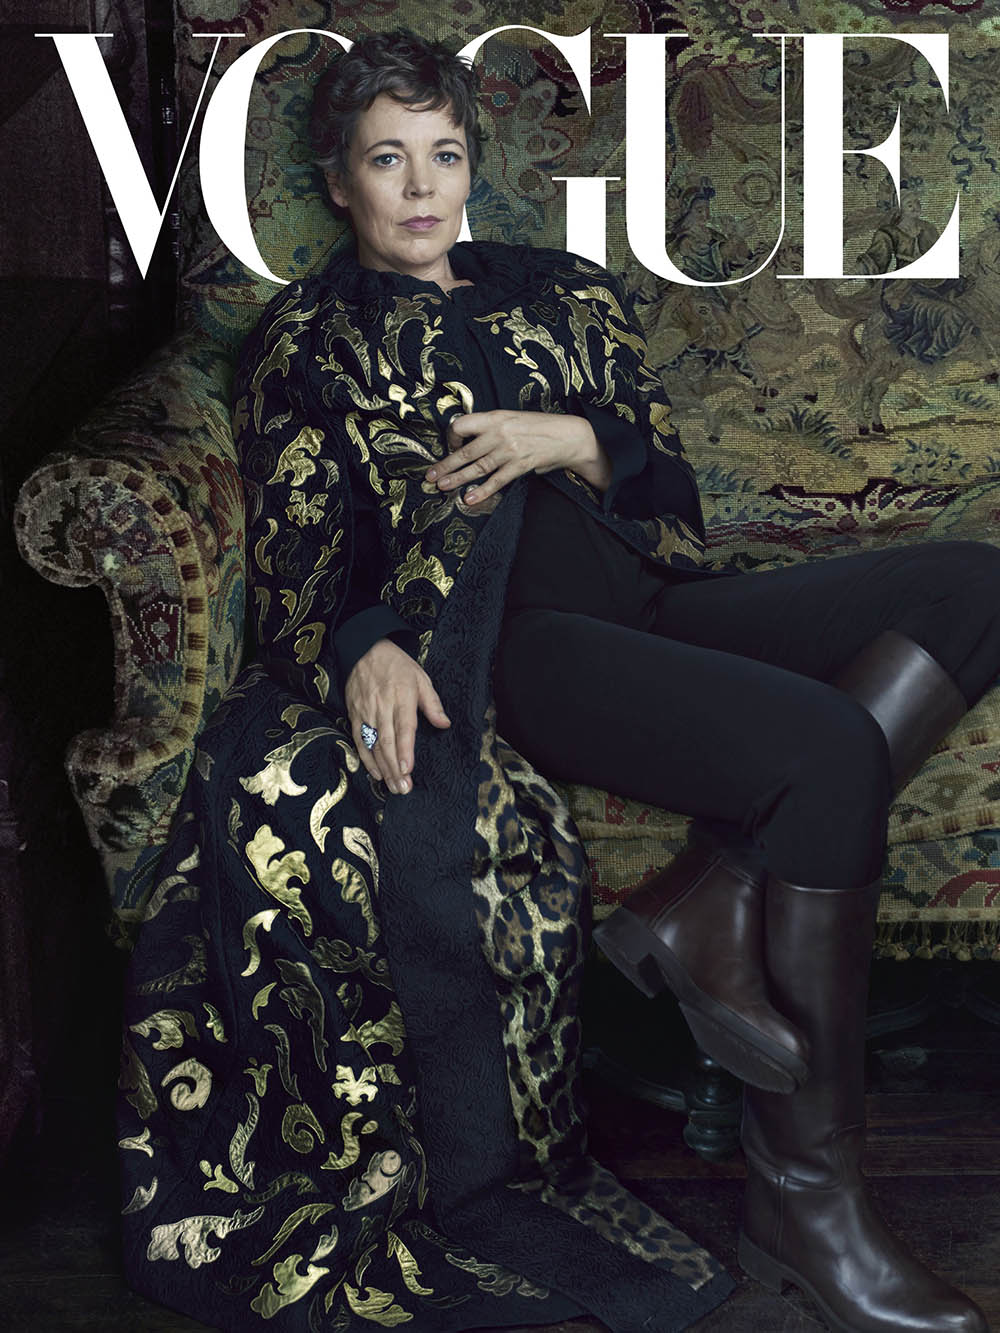 Olivia Colman covers Vogue US October 2019 by Annie Leibovitz